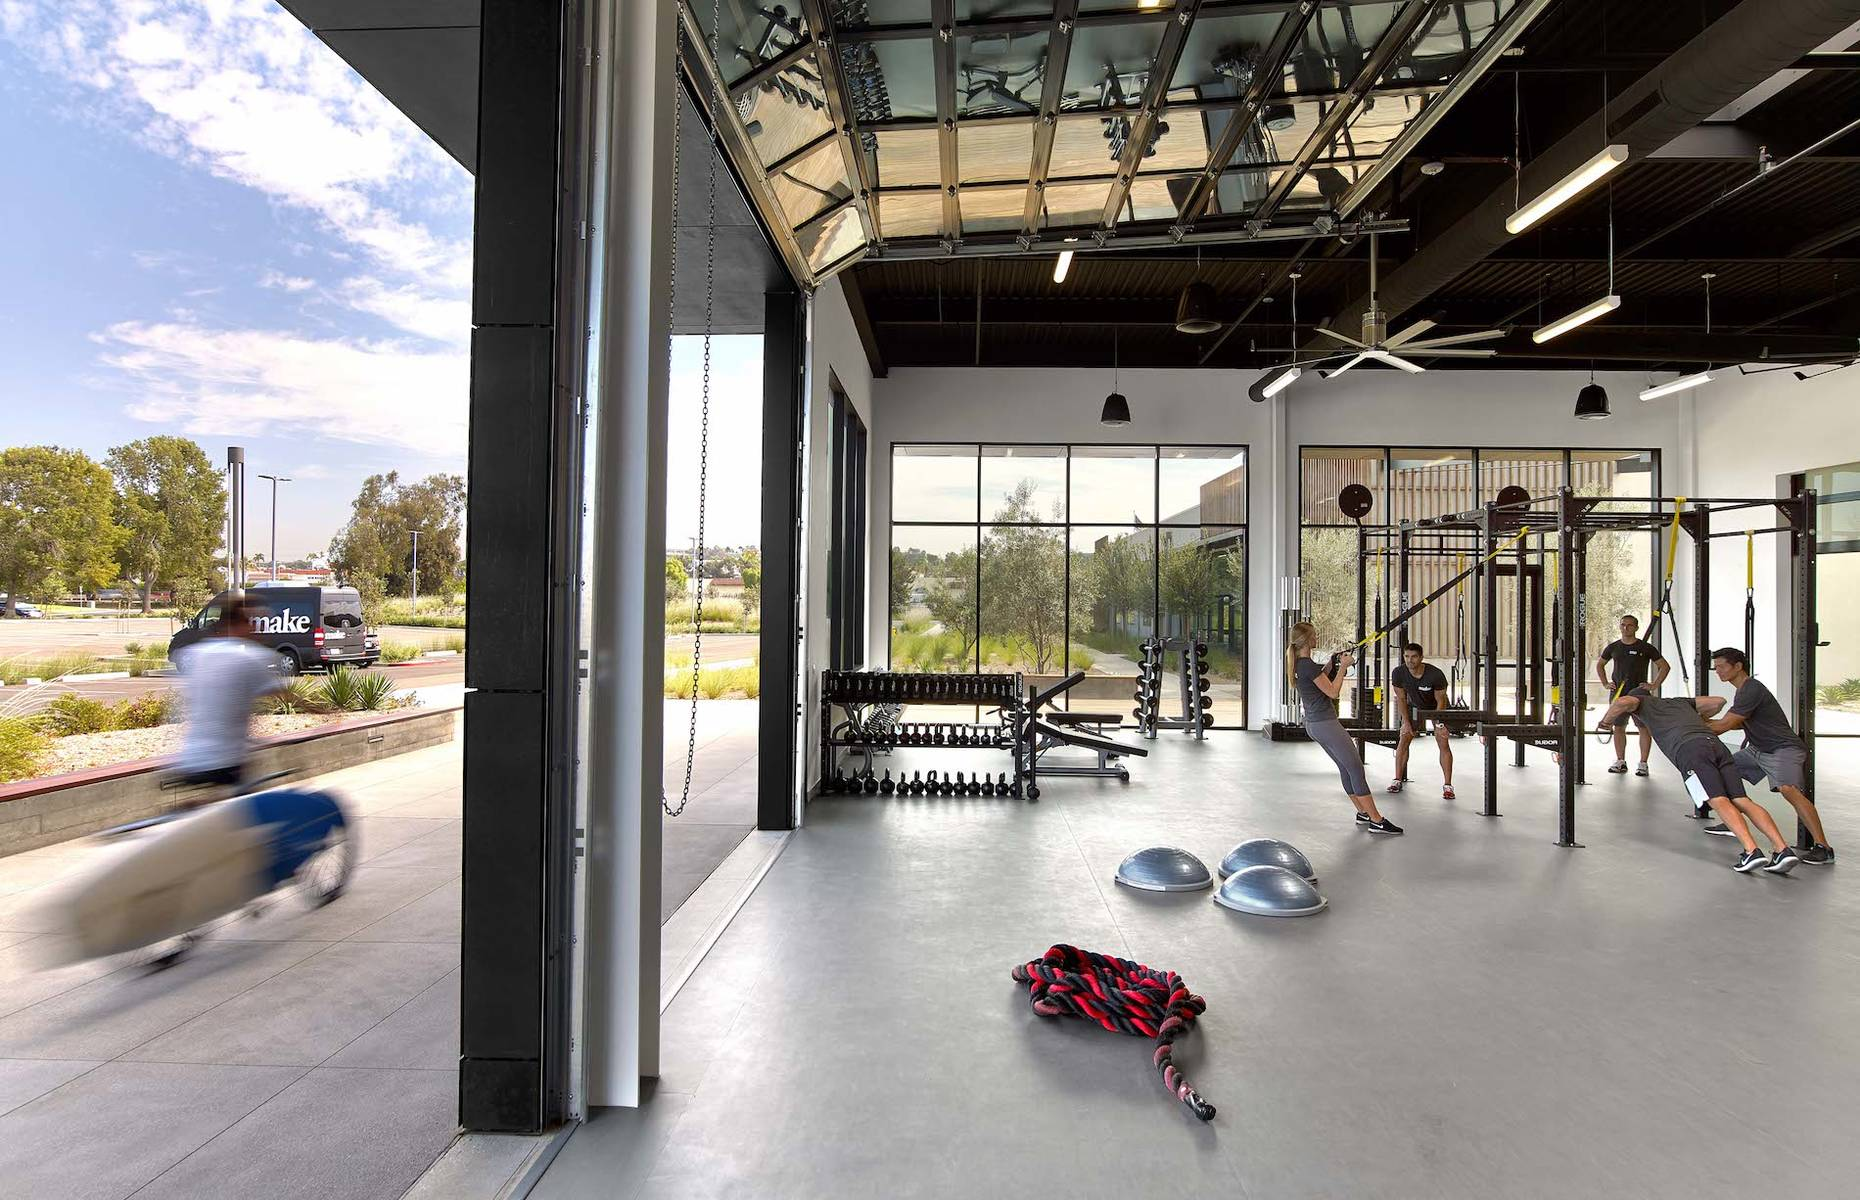 Make carlsbad fitness center photo by eric laignel%2810%29